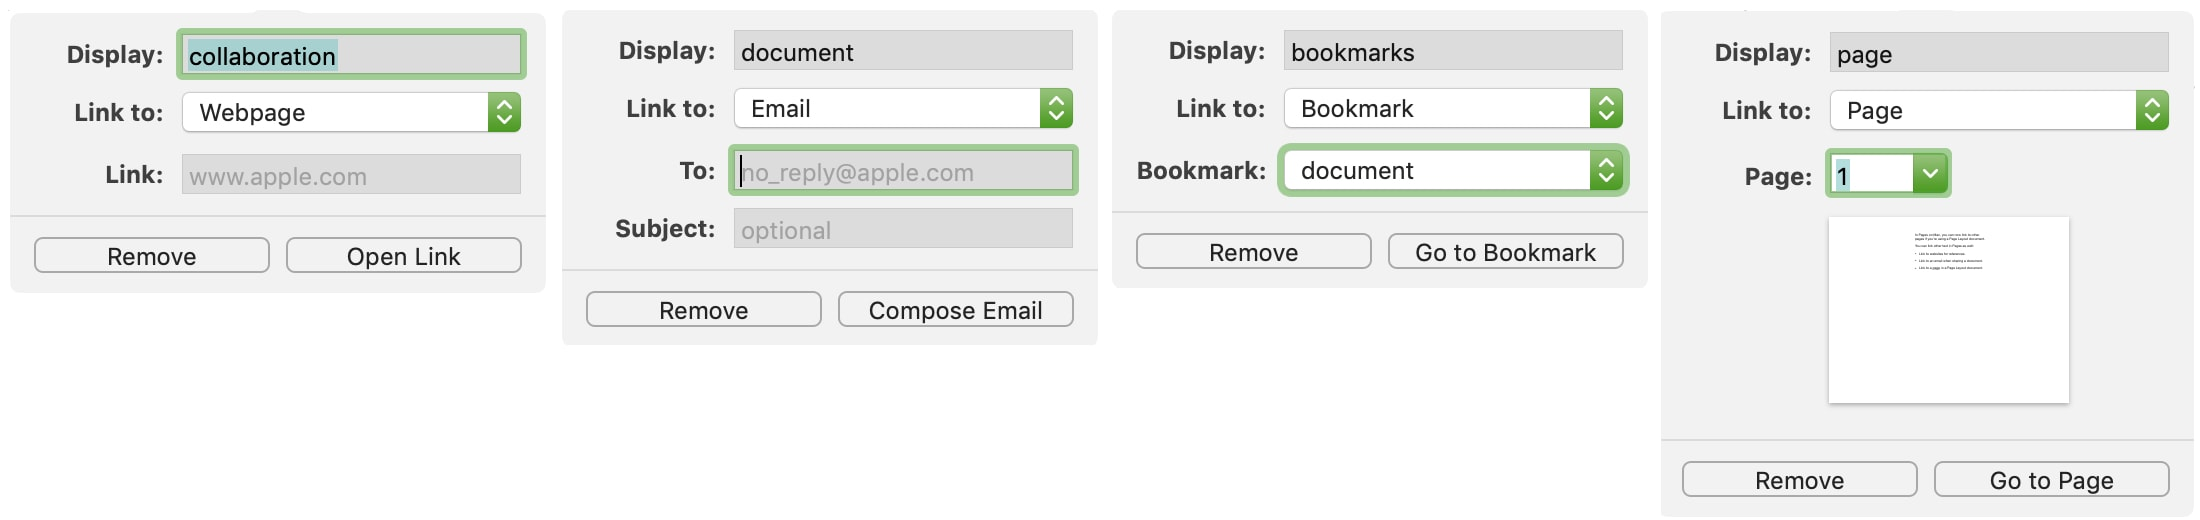 Types of Links in Pages on Mac